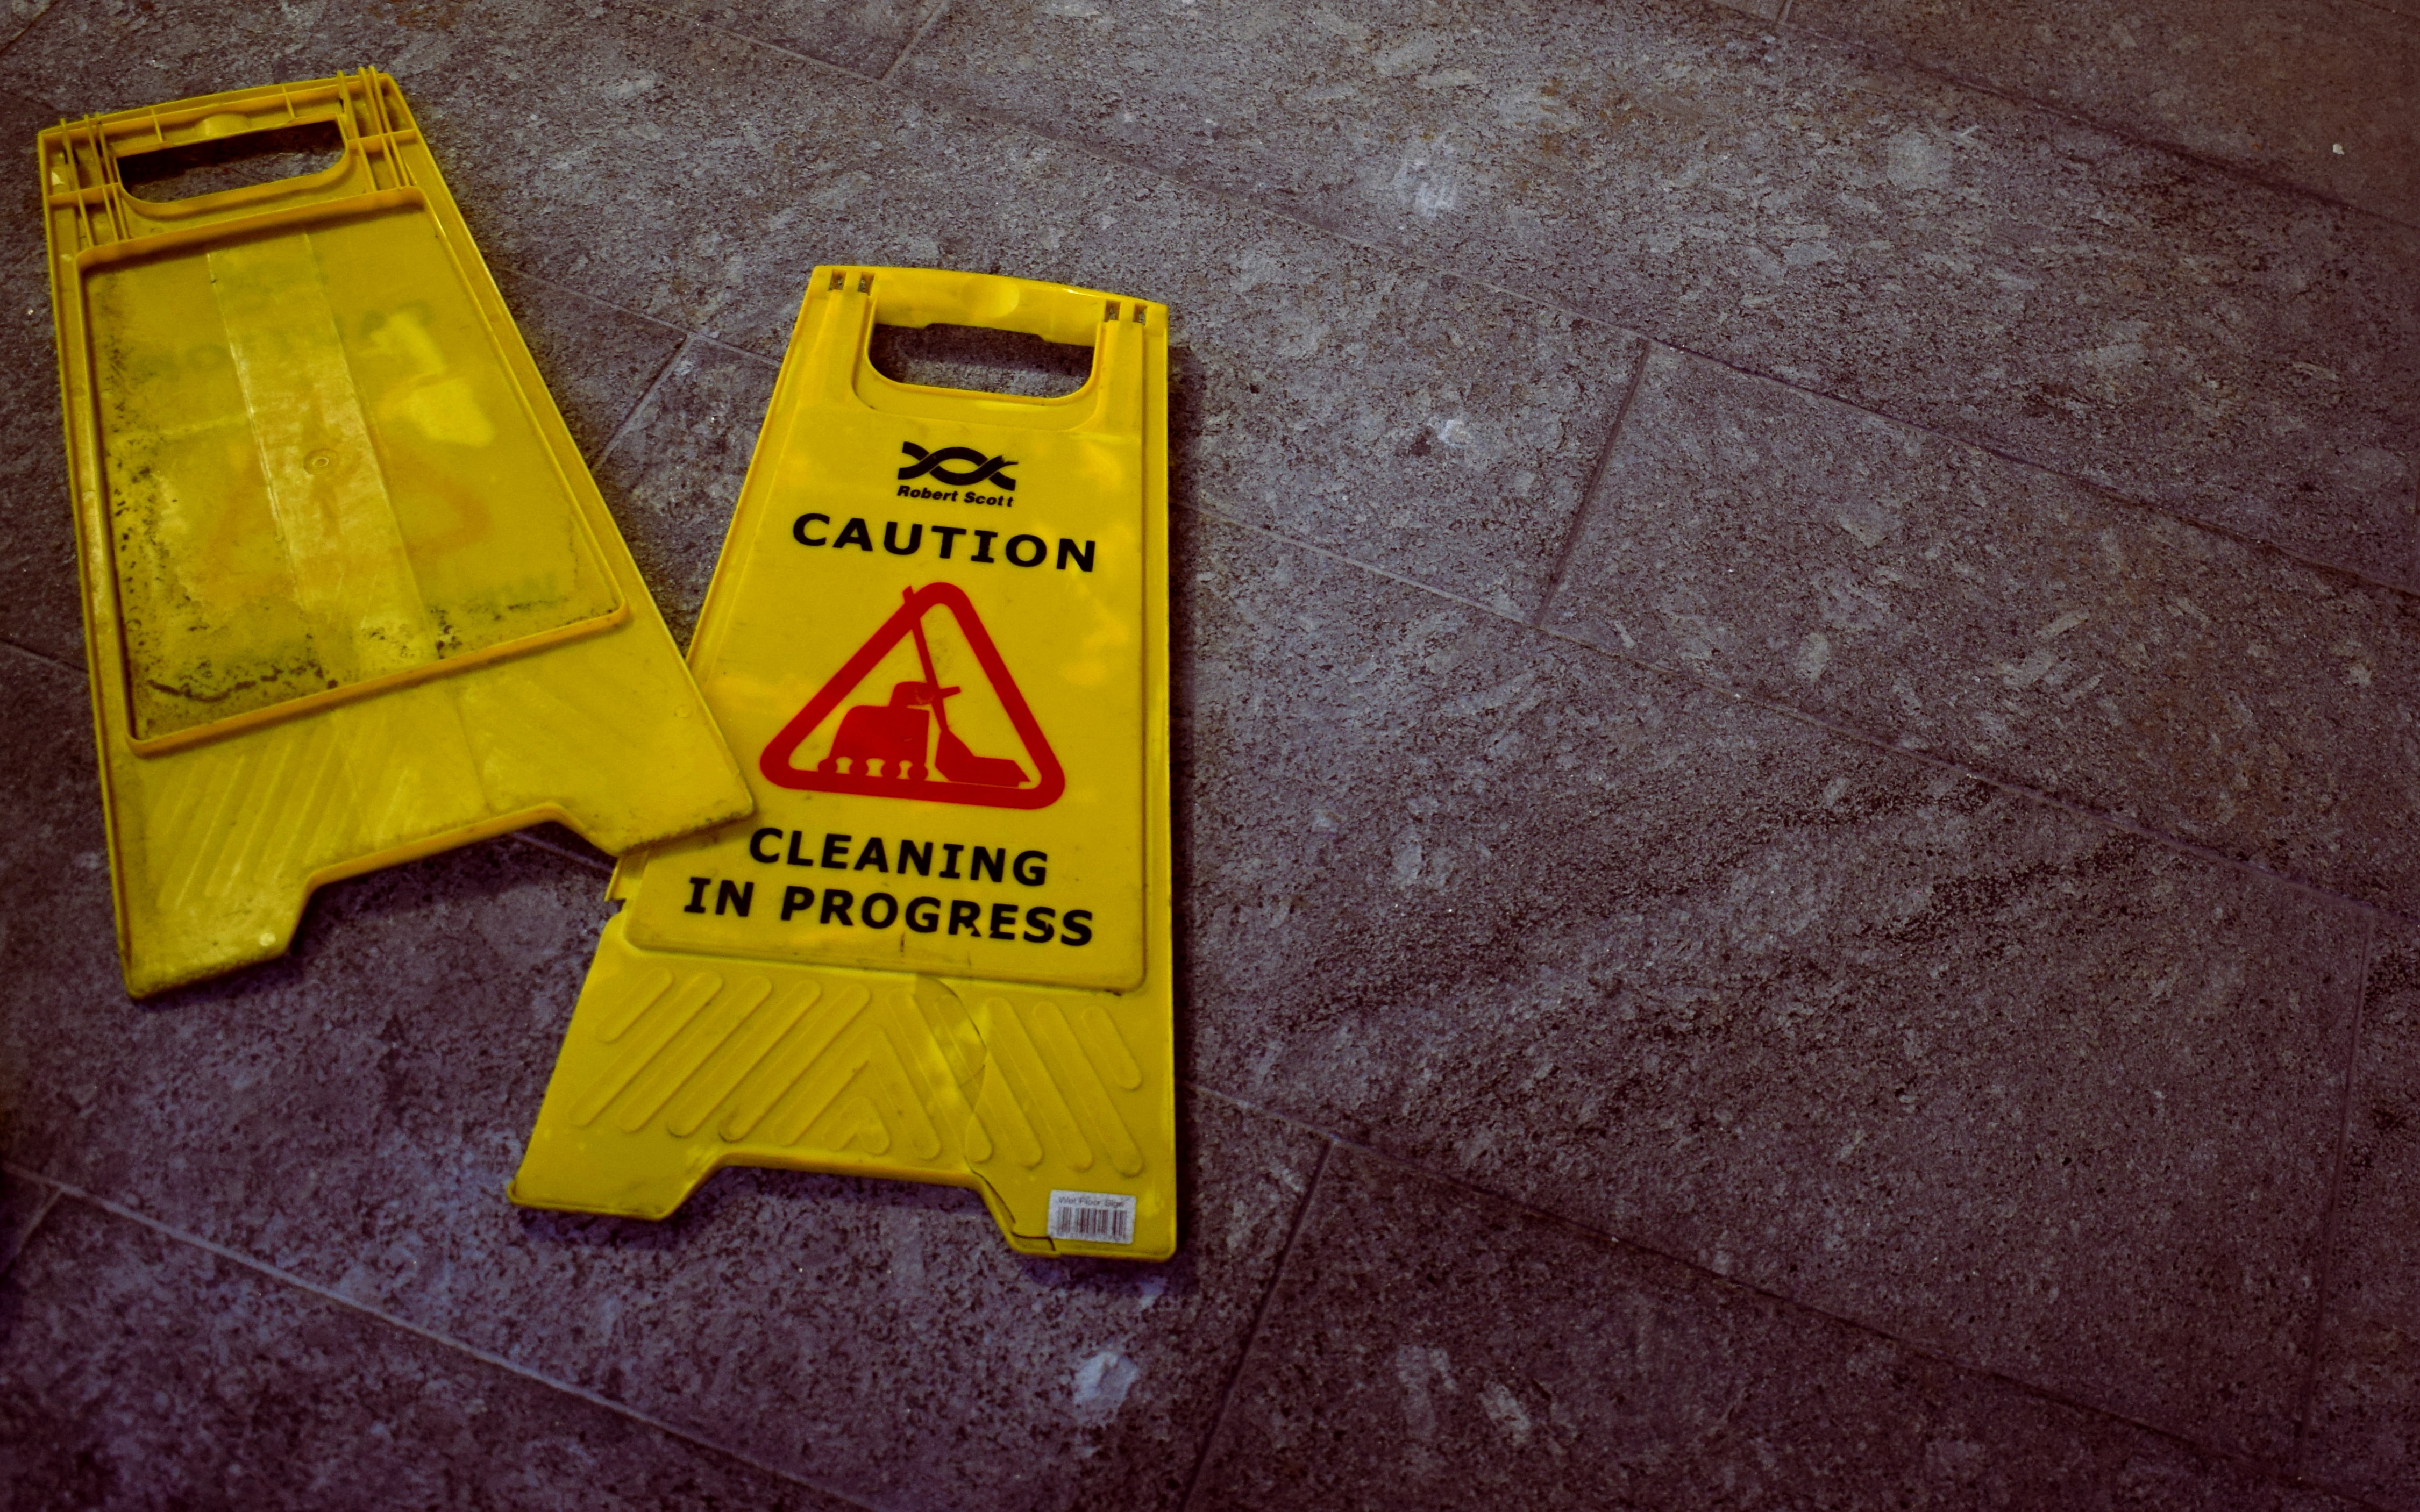 6 Steps to Reduce Health and Safety Risks for Cleaners